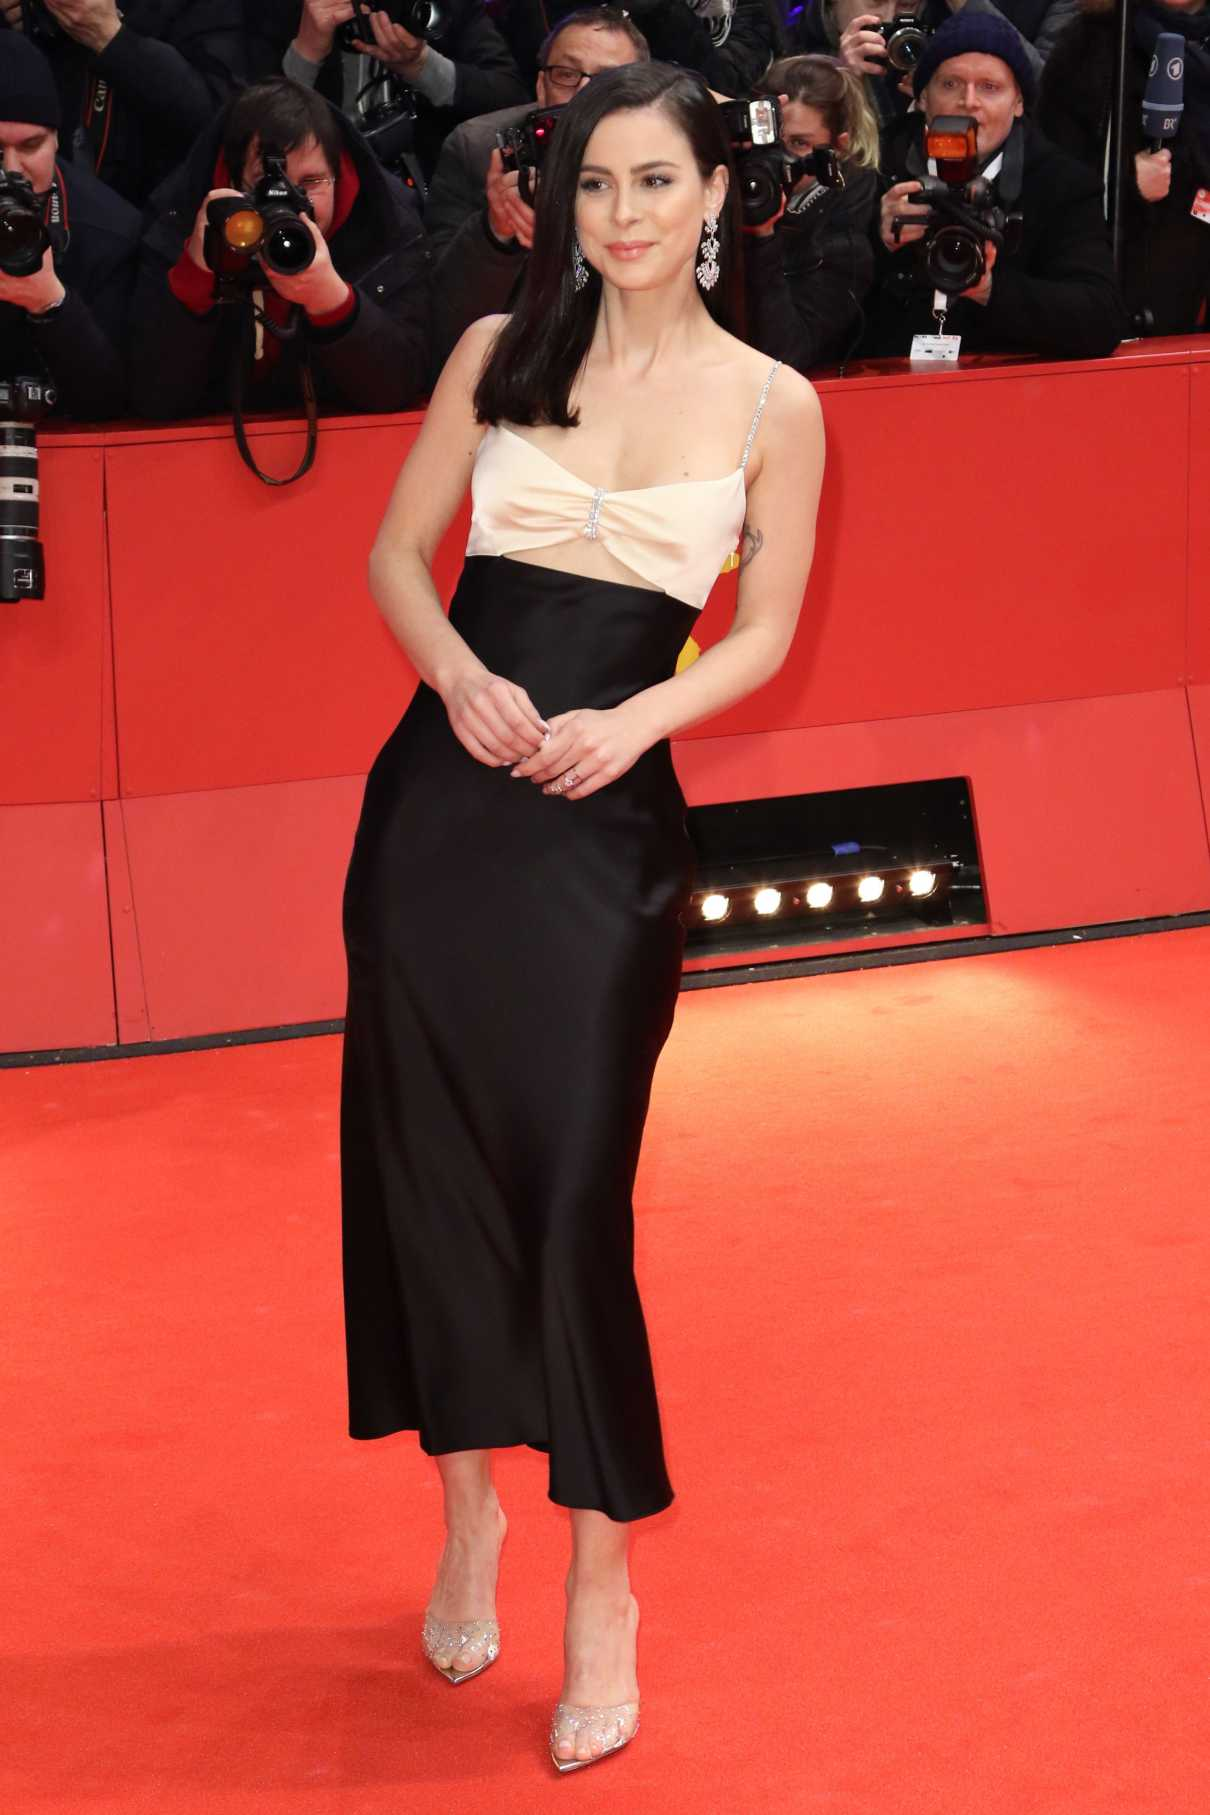 Lena Meyer-Landrut performs onstage at PxP (Peace by Peace